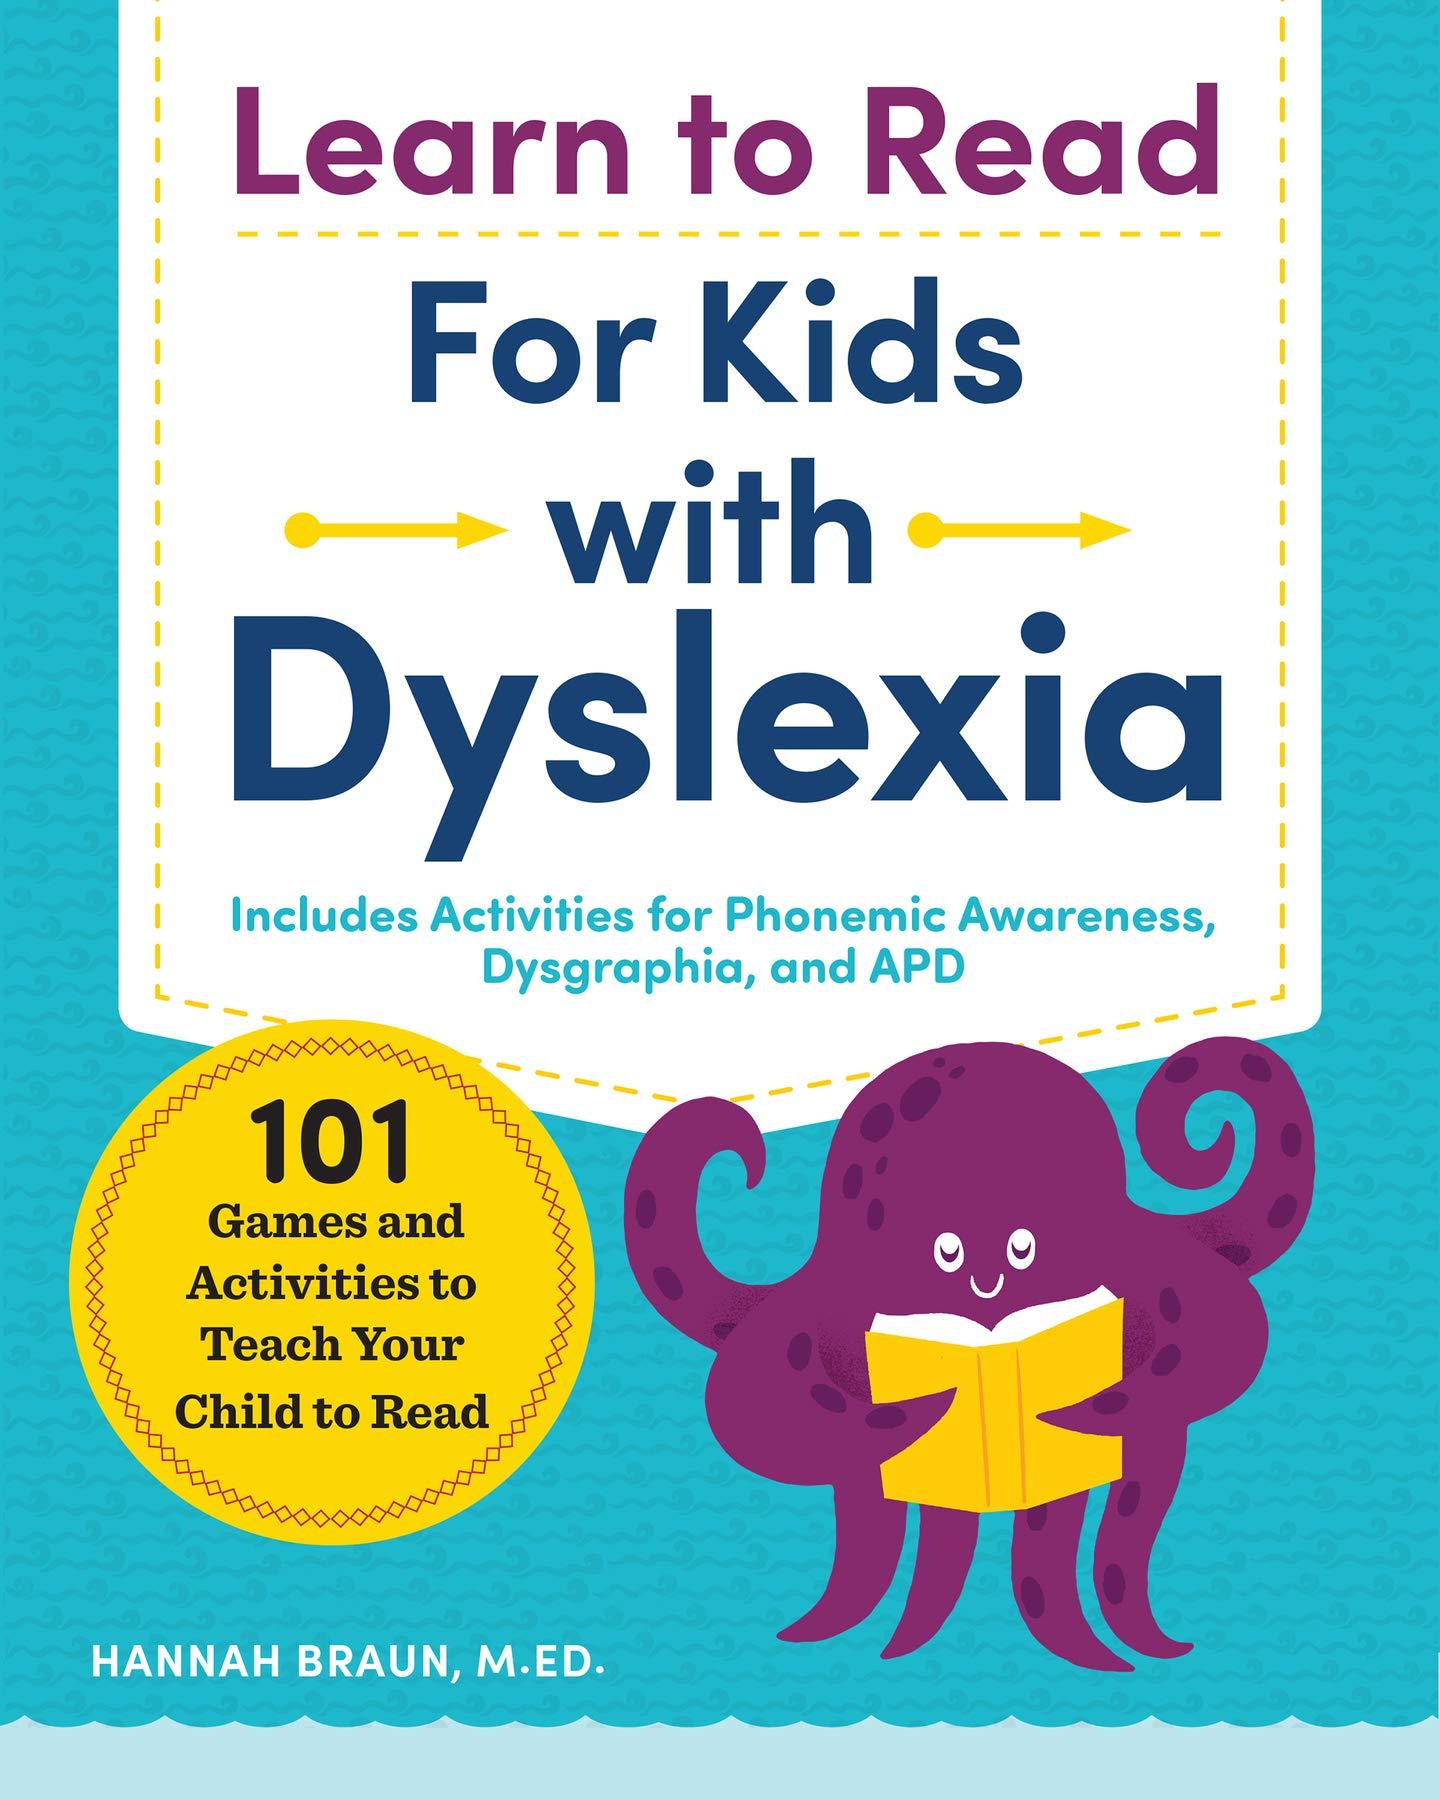 Learn to Read for Kids with Dyslexia: 101 Games and